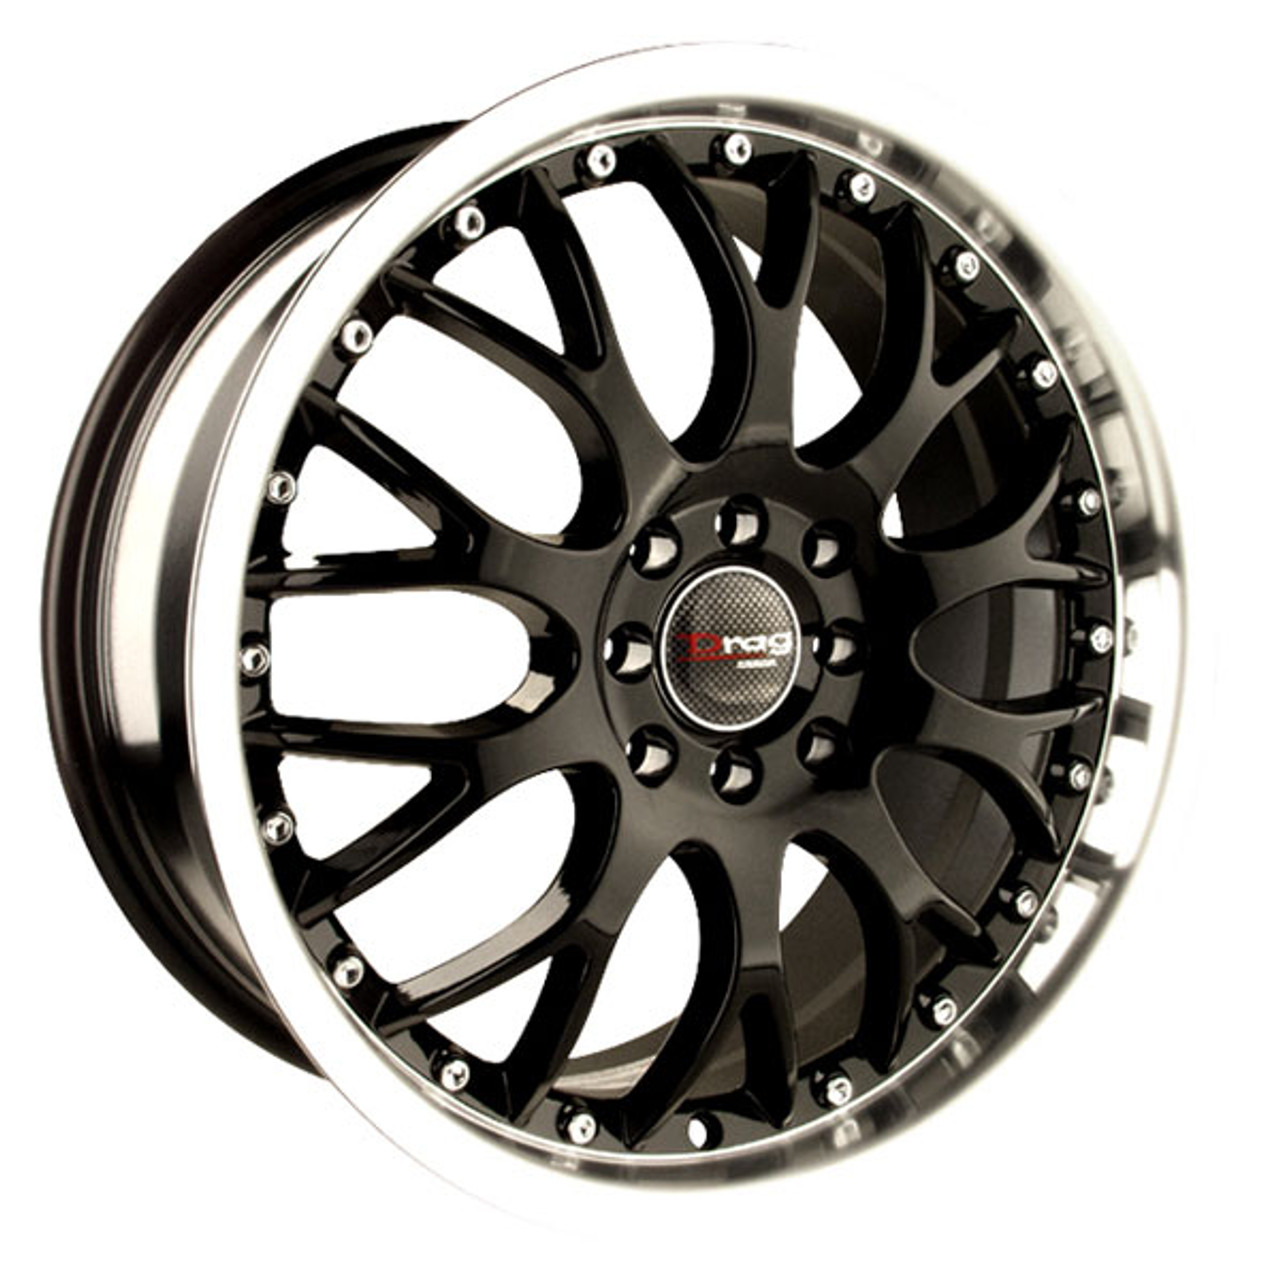 Free Shipping On Drag DR60 60x60 Et60 Cb603 60x1060 60x60 Gloss Black Impressive 5x105 Bolt Pattern